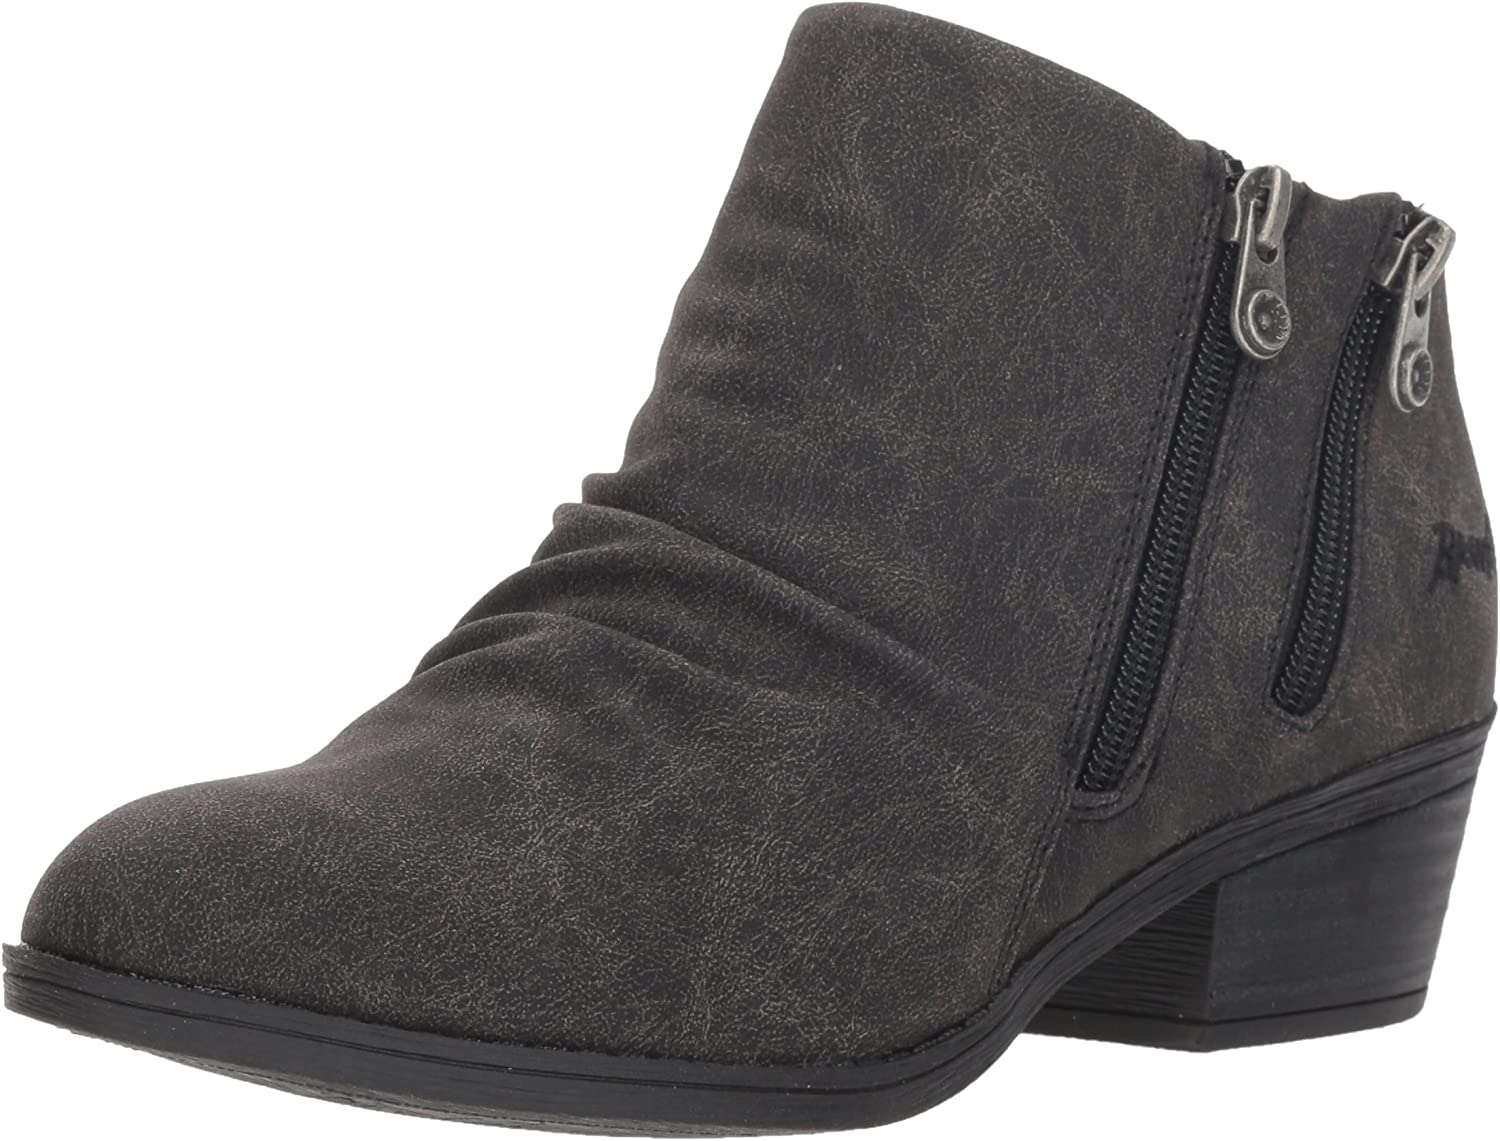 Blowfish Women's Storz Ankle Boot, Black Spindal Polyurethane, 6 M US